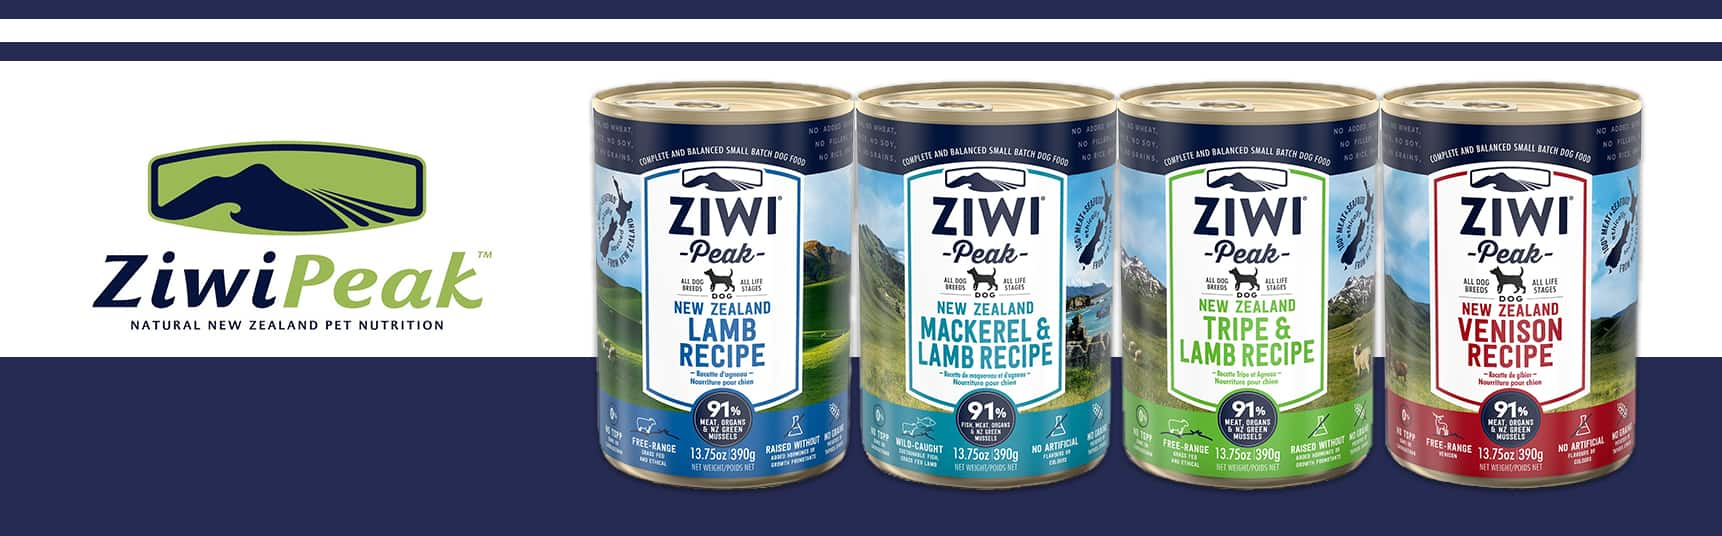 Ziwi Peak Canned Dog Foods